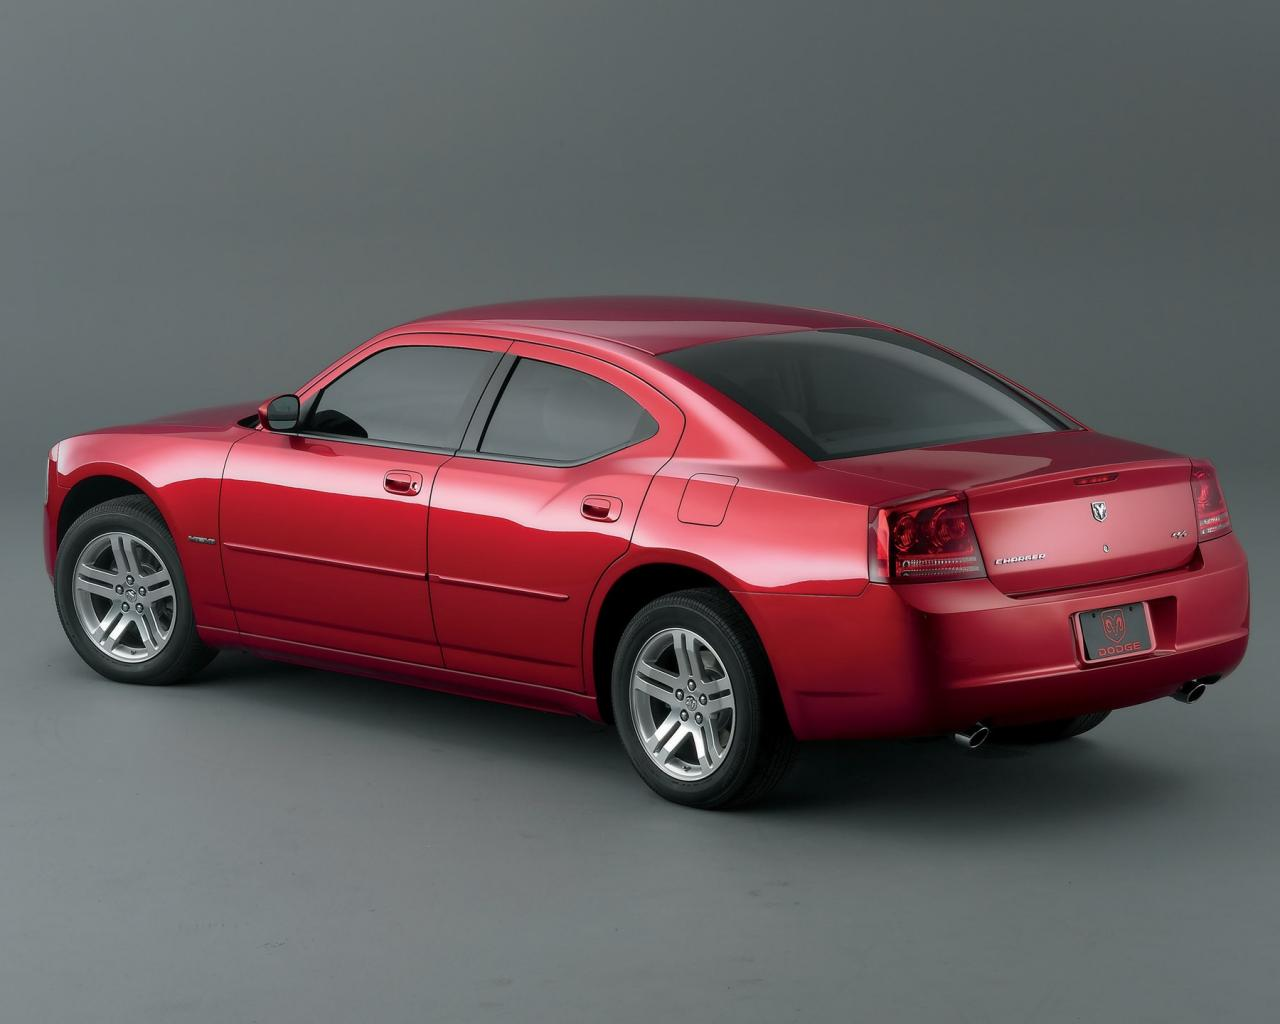 2006 Dodge Charger Rt Racer 1280x1024